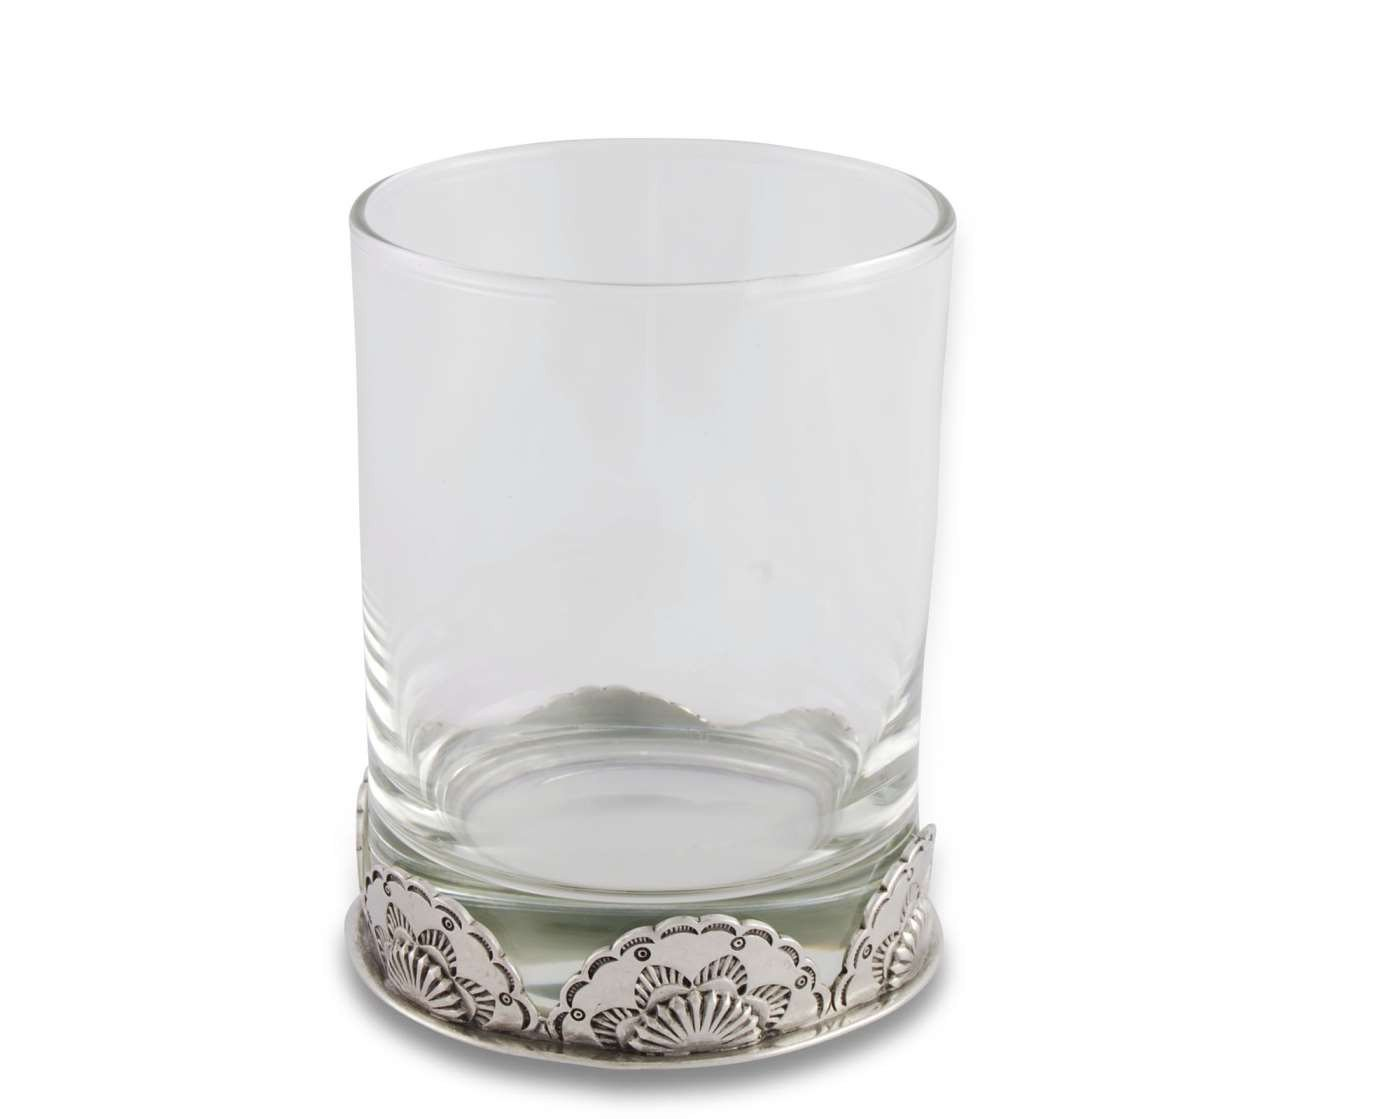 Vagabond House  Old Fashion Glass  - Western